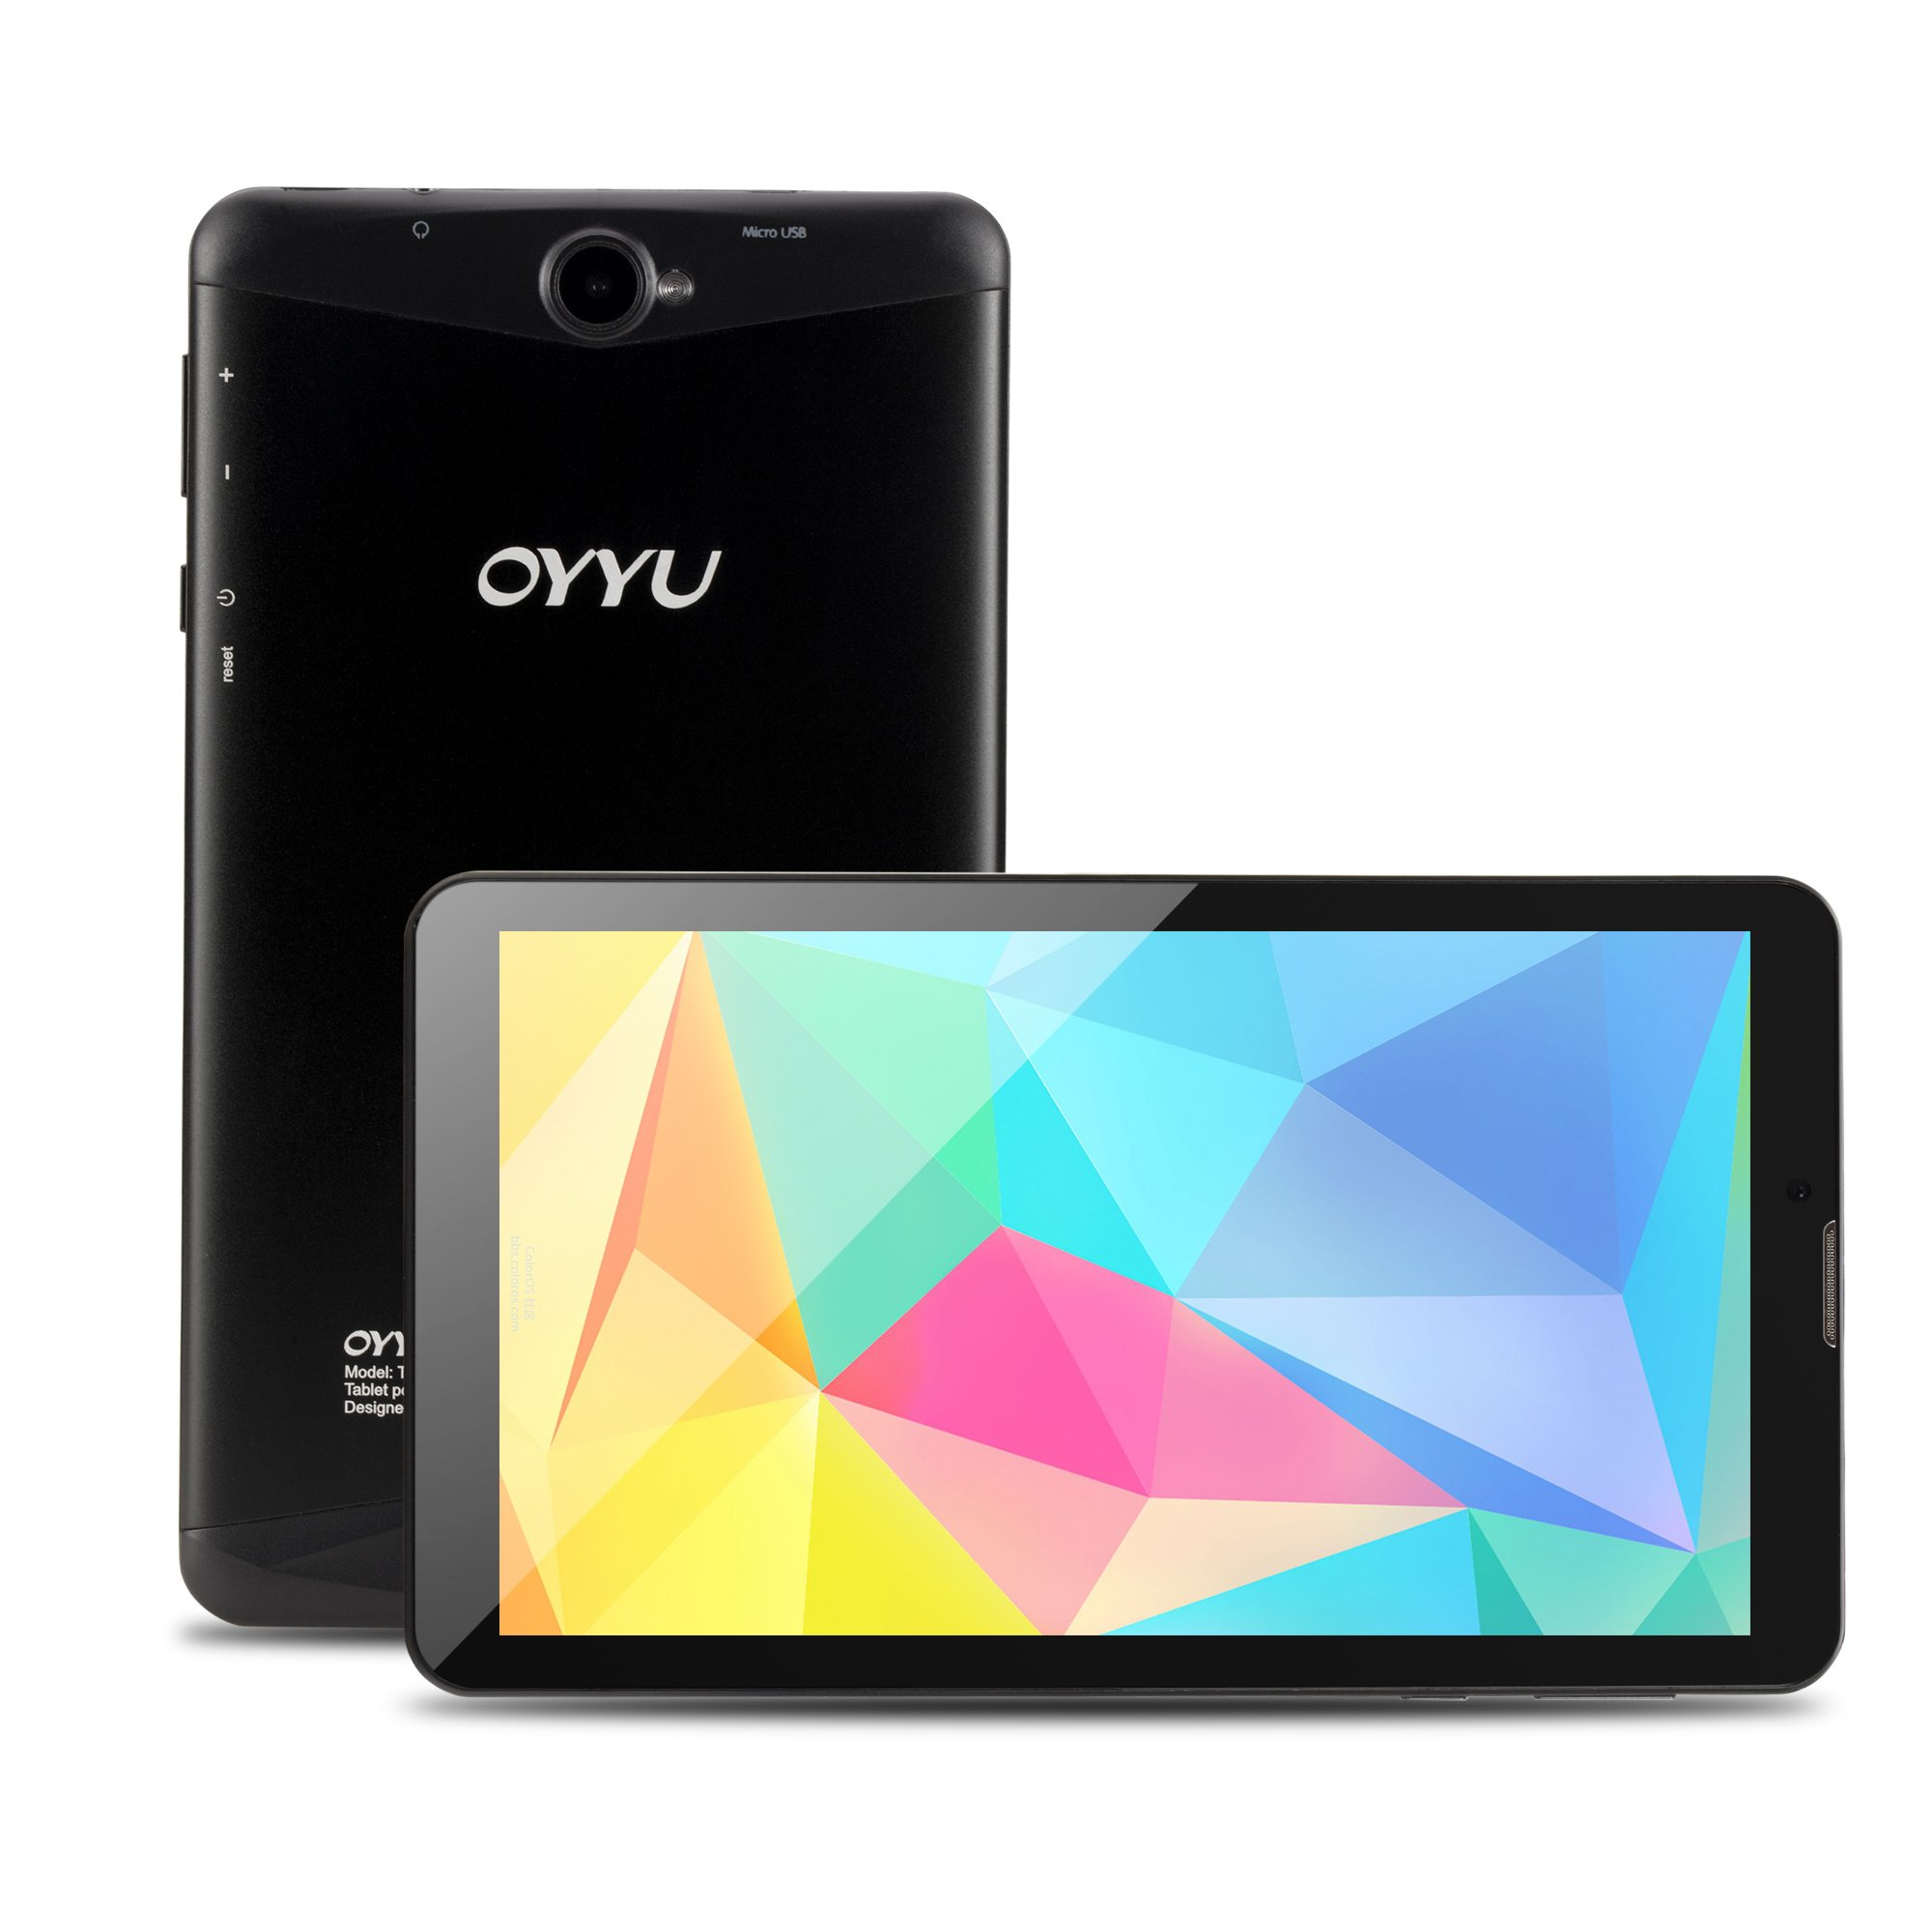 OYYU T7 7 Inch 3G Unlocked Phablet, Android 6.0 Dual SIM Card Phone Call Tablet PC, MTK8321 Quad Core 16GB ROM IPS Display 1280x720, with Dual Camera Wi-Fi GPS Bluetooth OTG Black rear